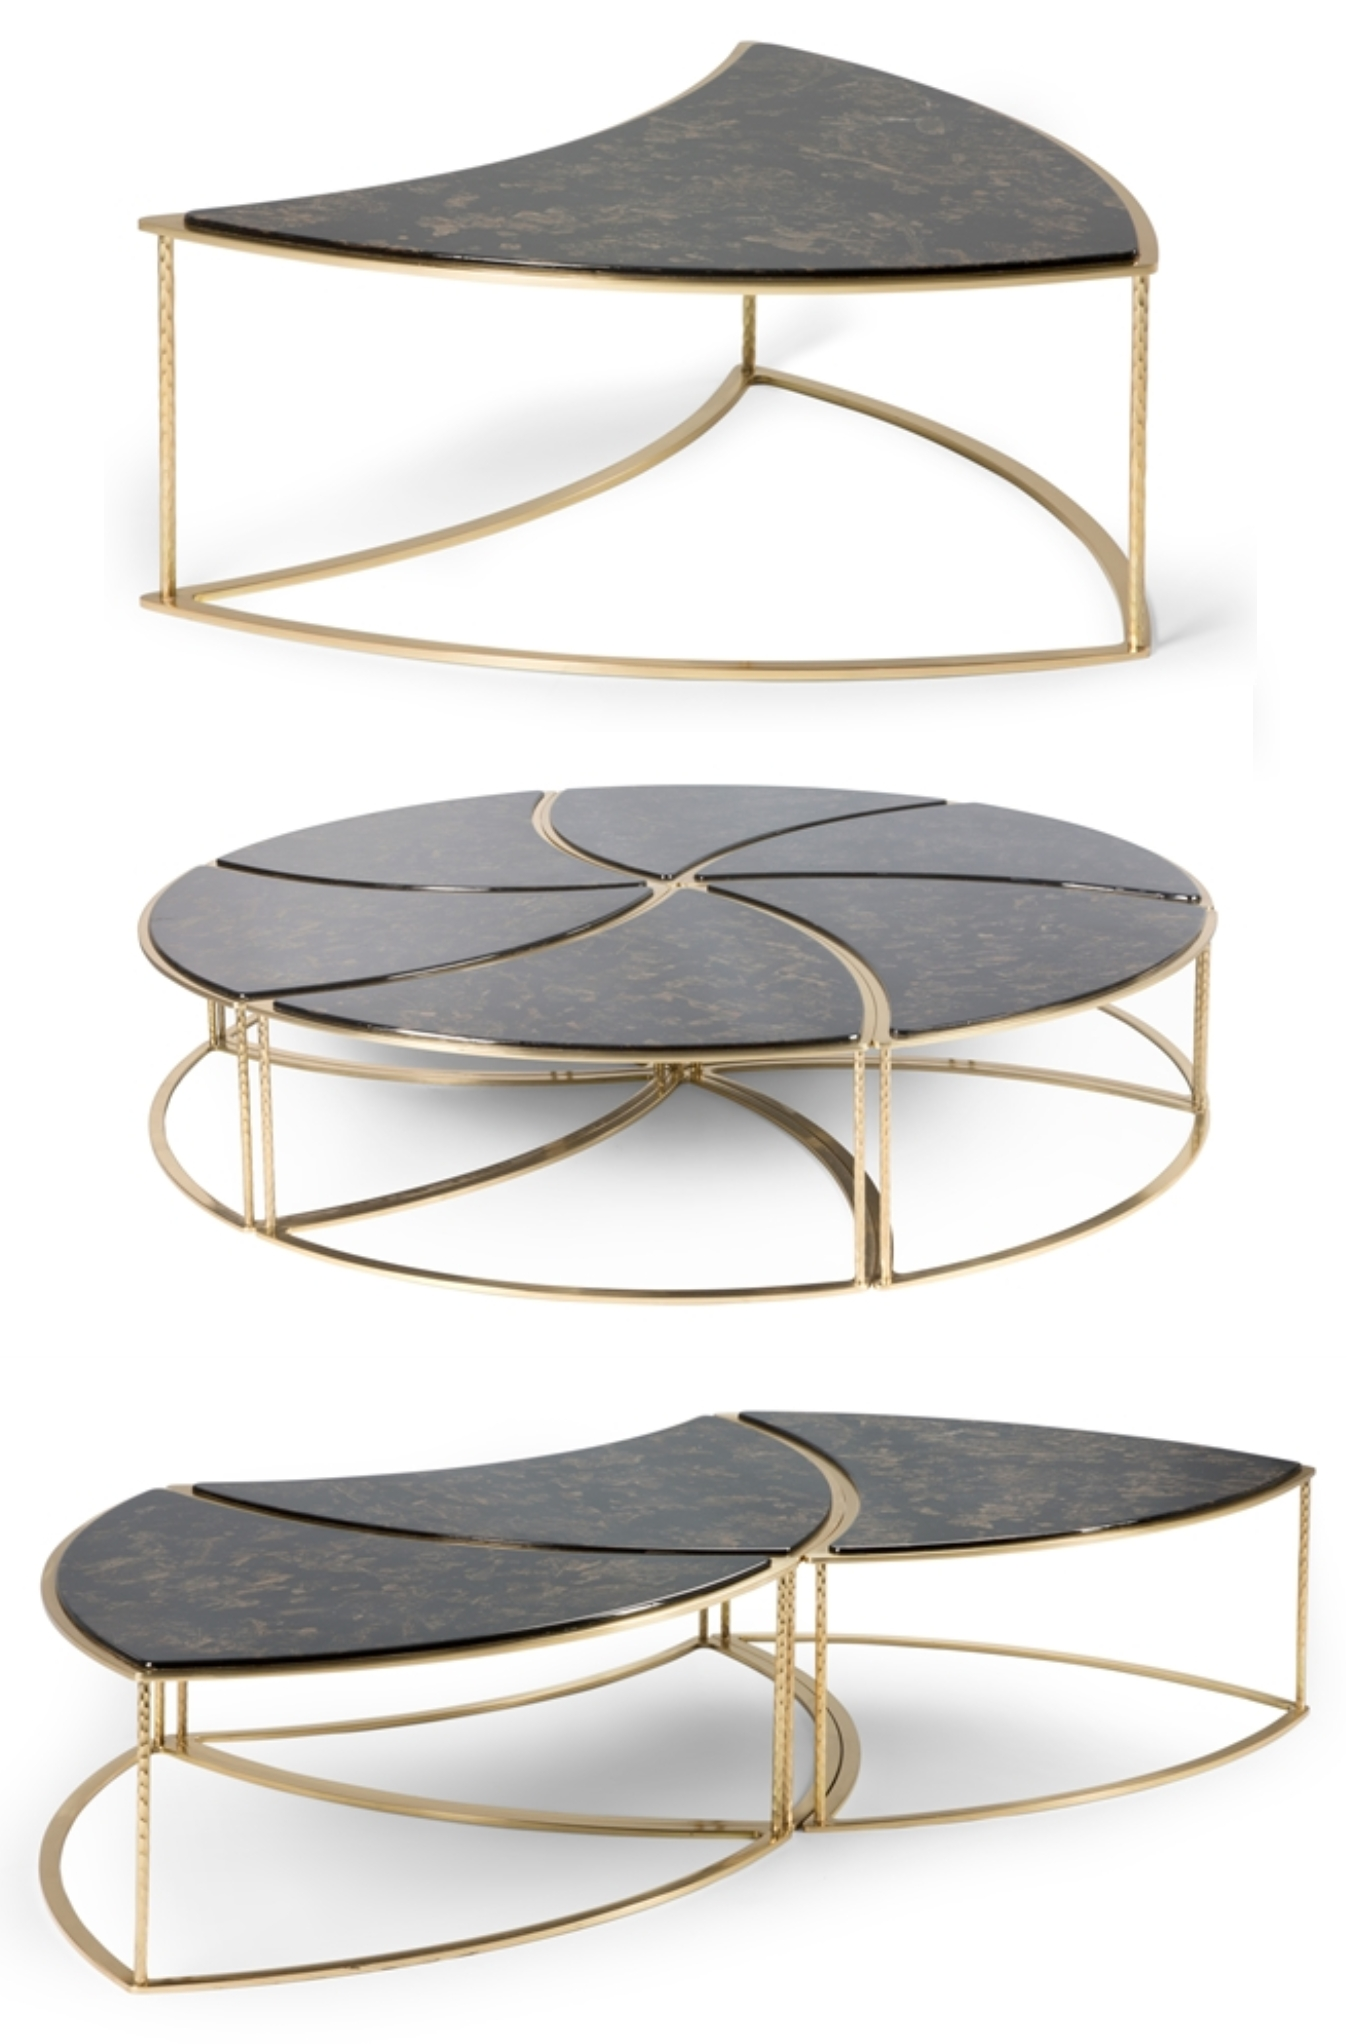 Newest Modular Coffee Tables Regarding This Unique 6 Piece Modular Coffee Table Is Available In 3 Different (View 14 of 20)